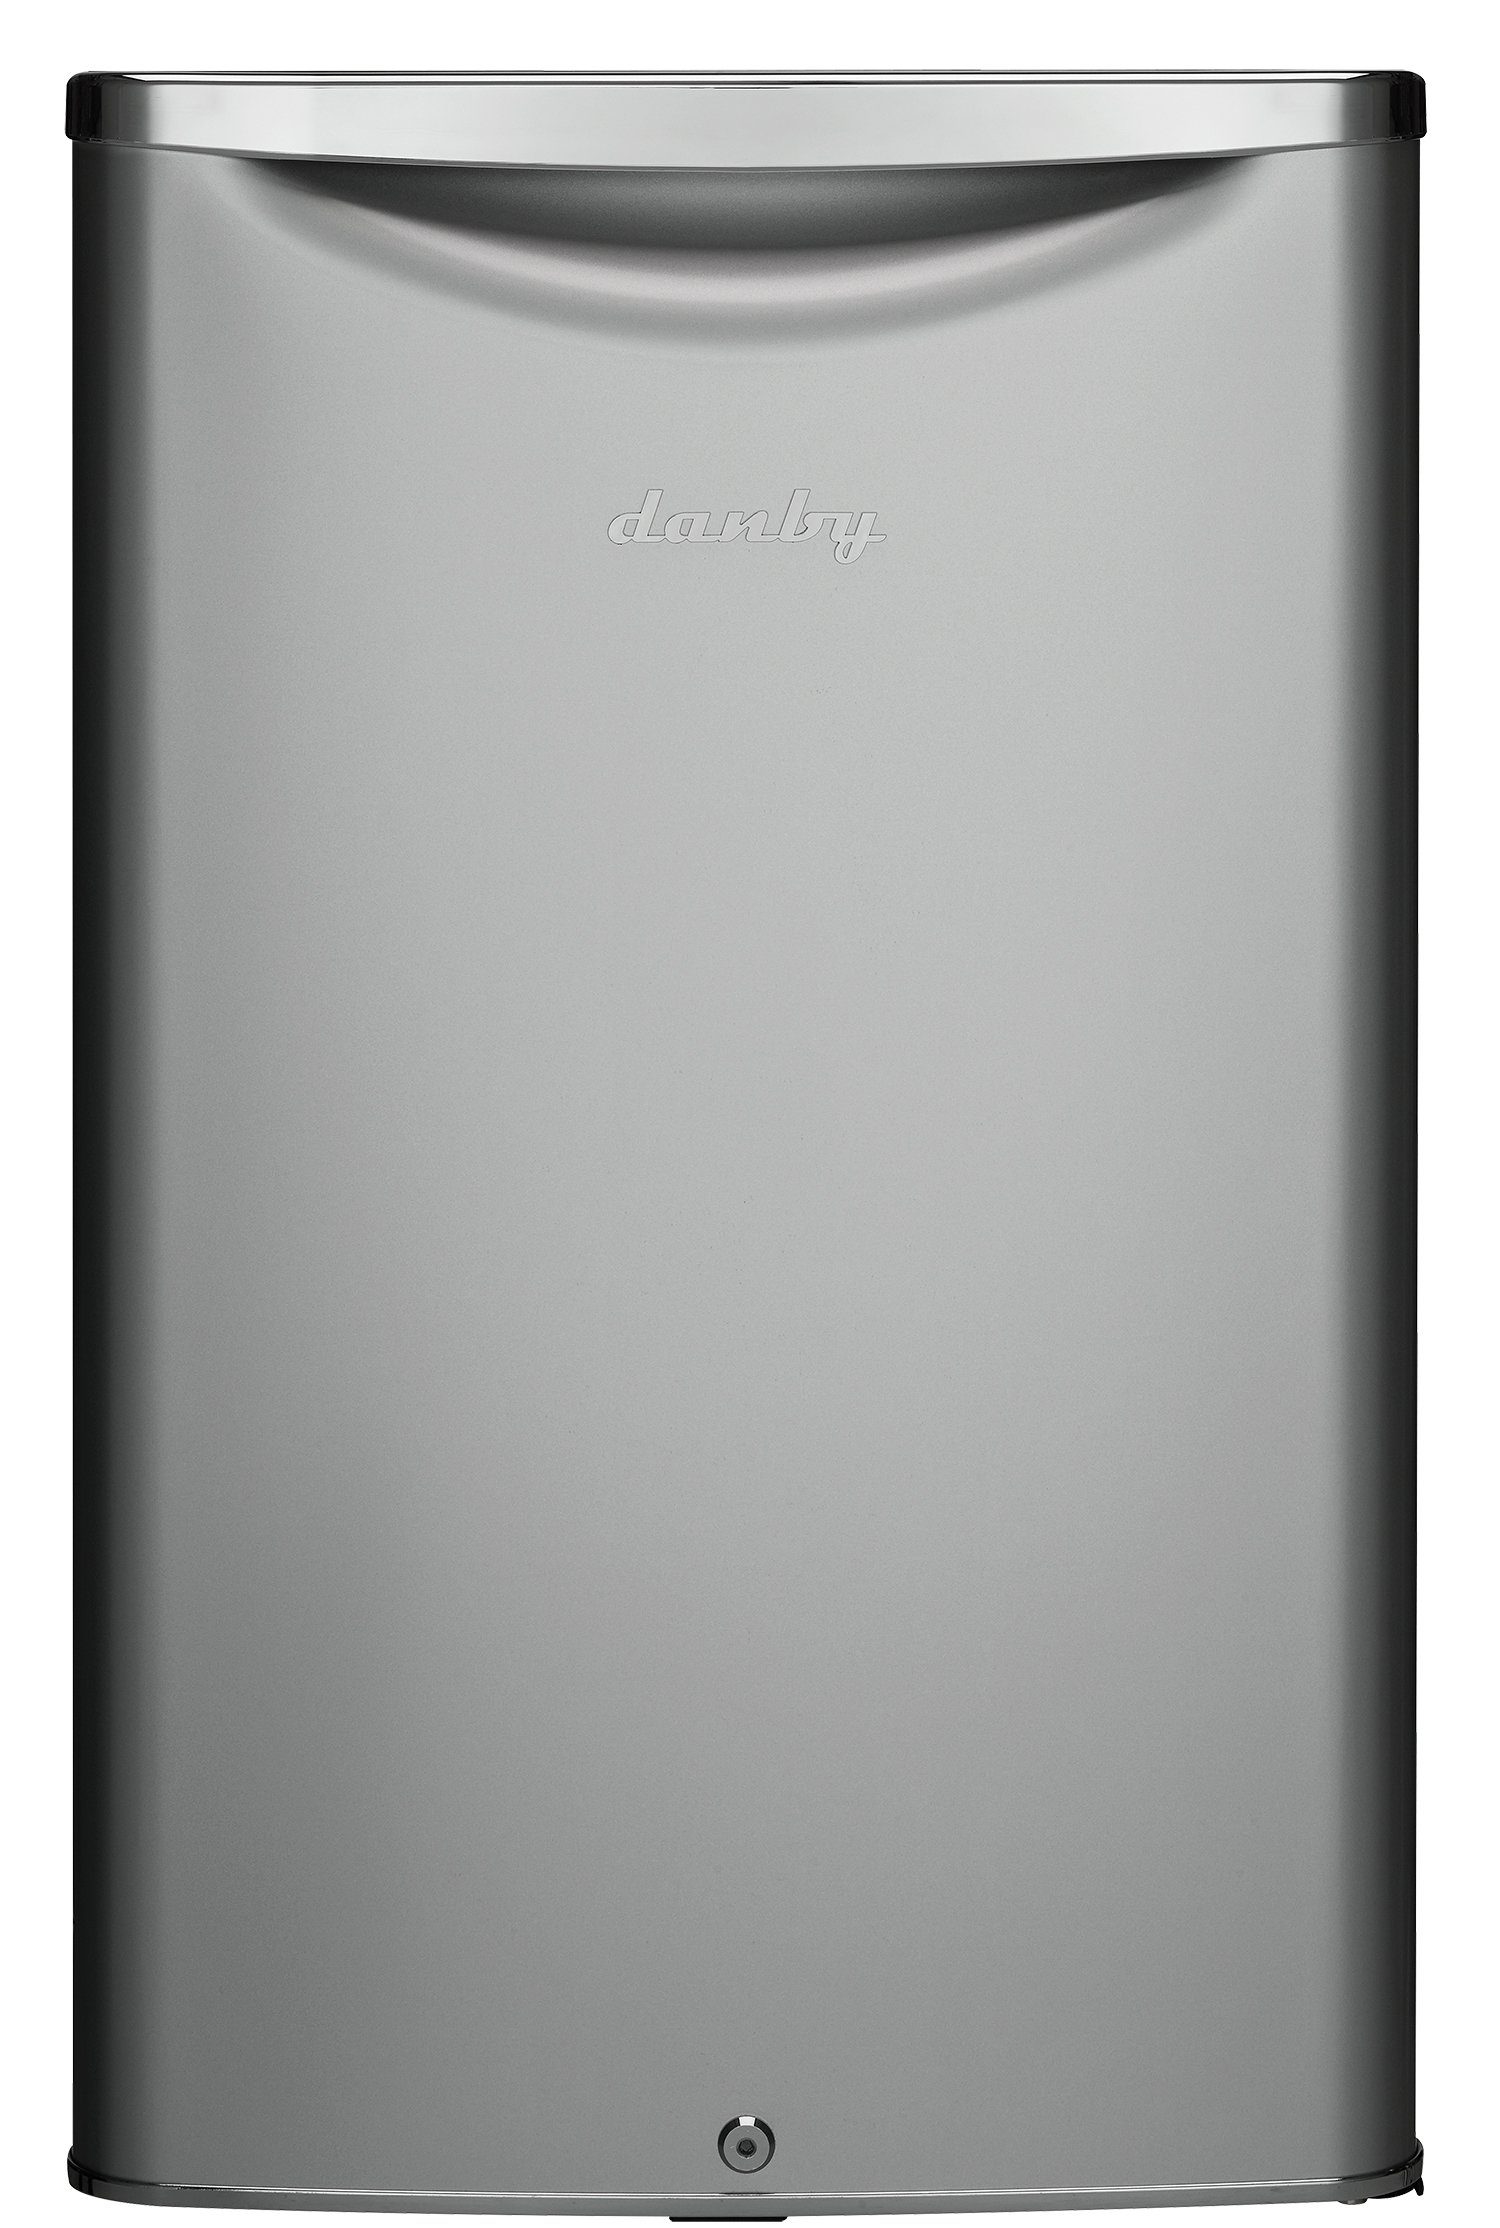 Danby DAR044A6DDB 4.4 cu.ft. Contemporary Classic Compact All Refrigerator, Iridium Silver Steel by Danby (Image #1)